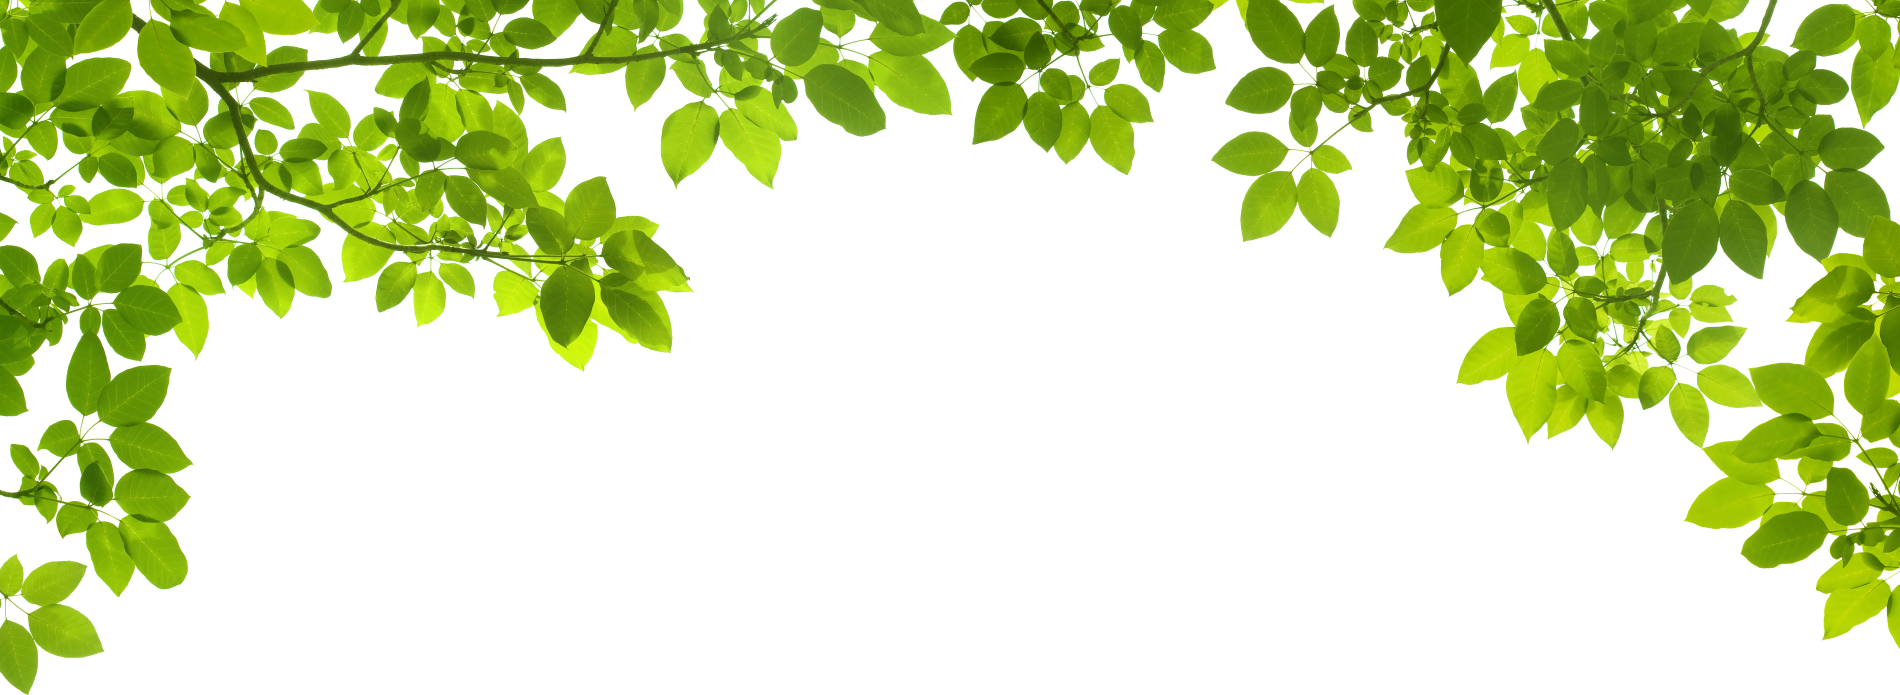 Green Leafs Png image #44853